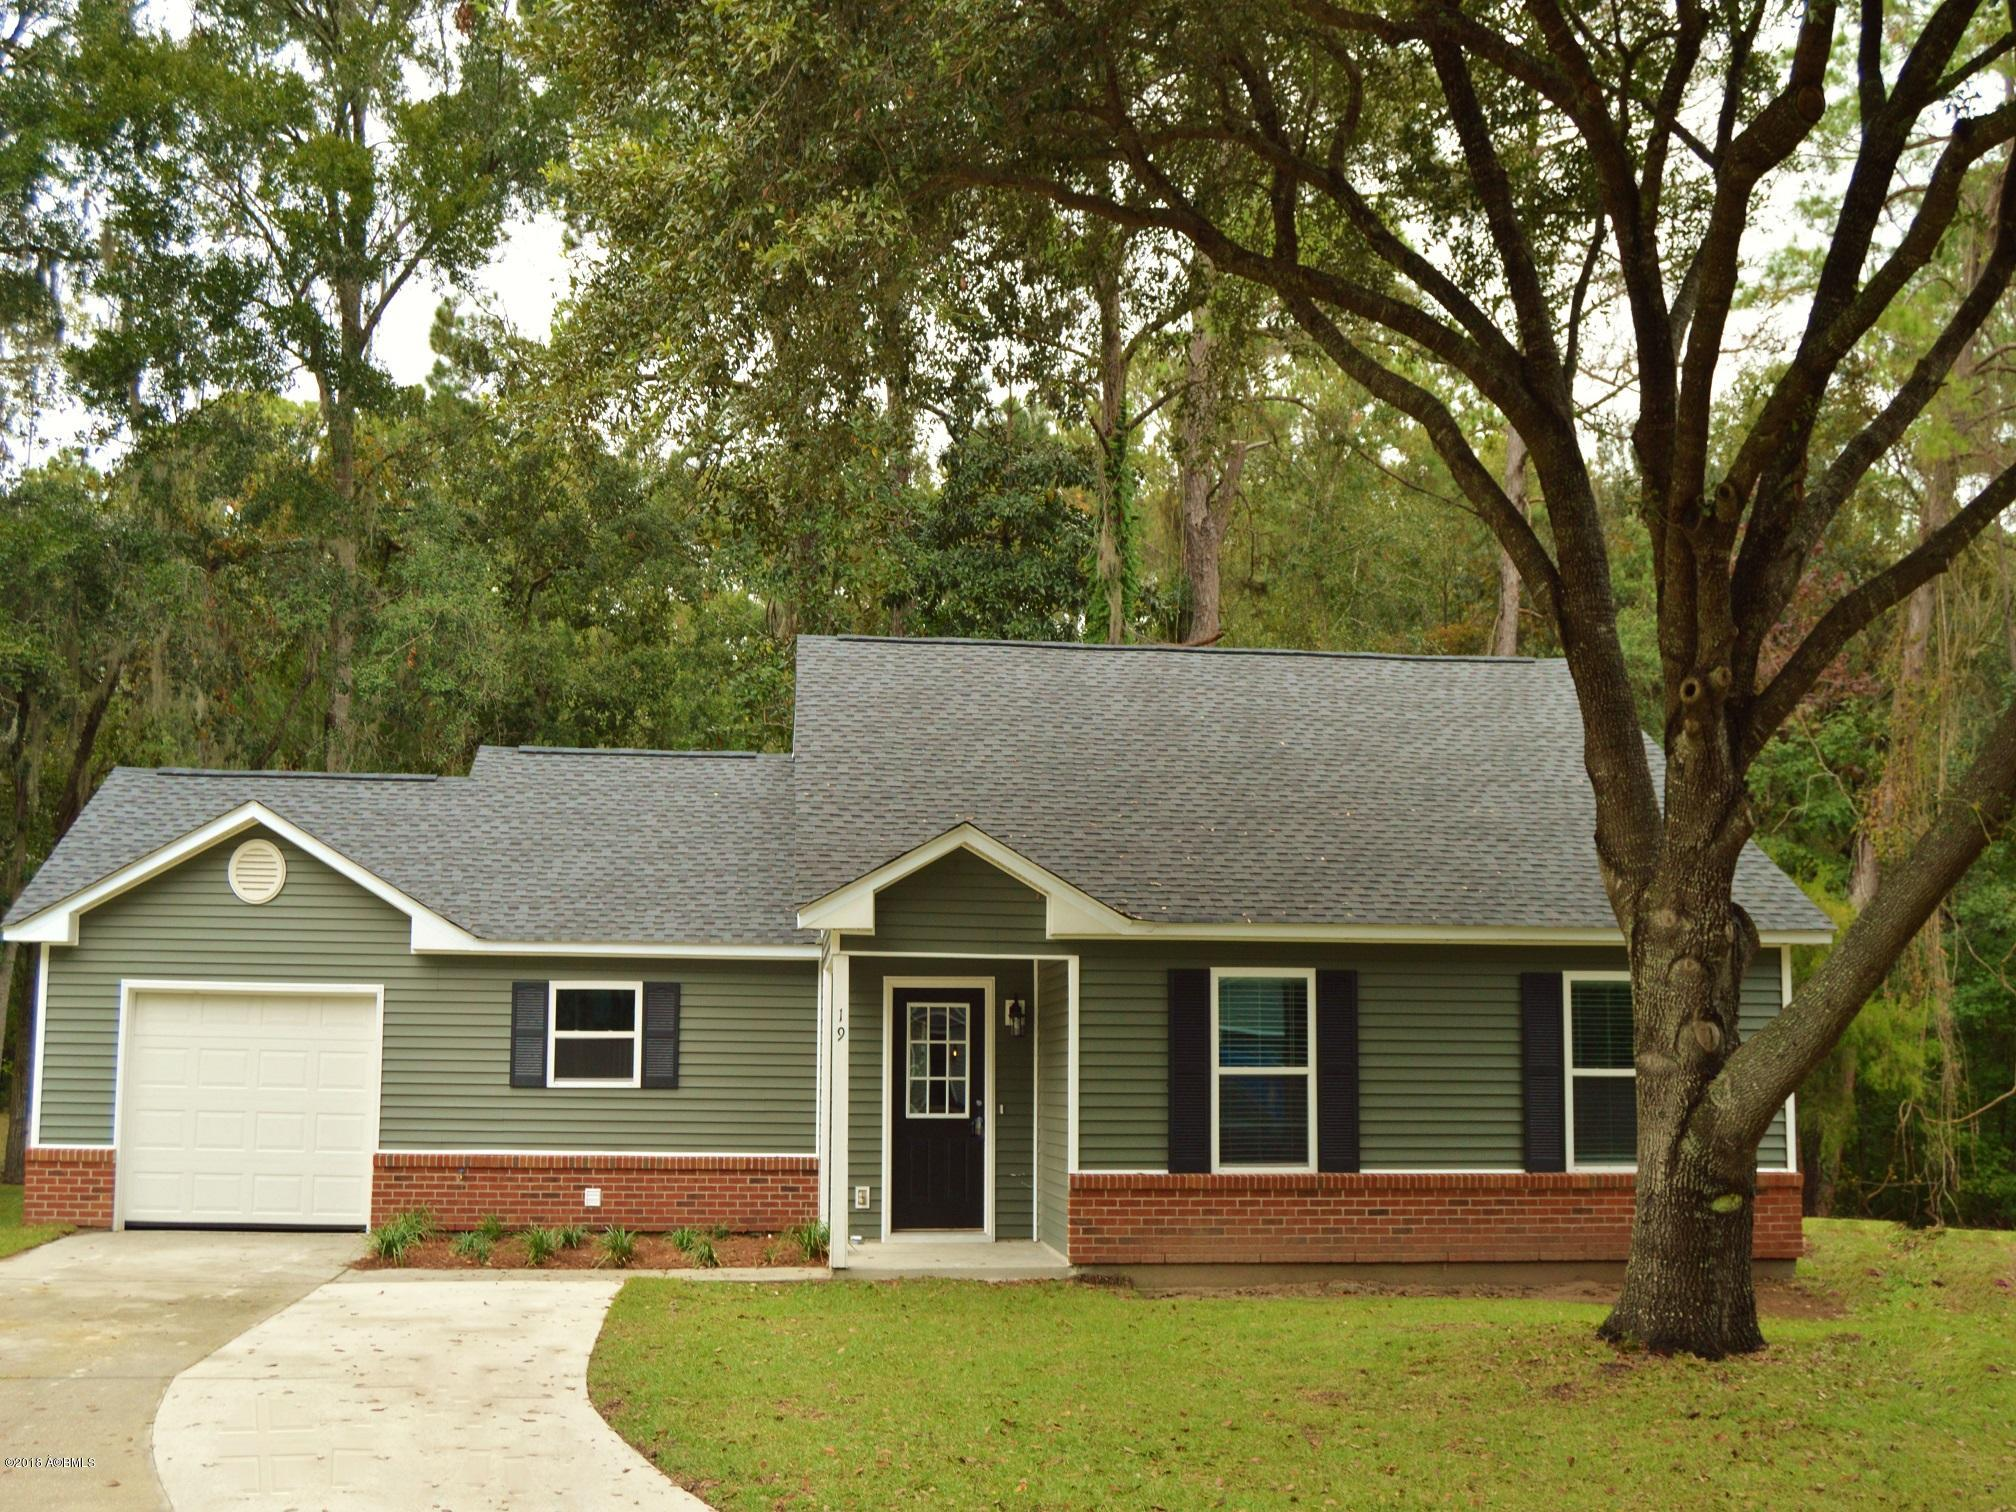 Photo of 19 Brindlewood Drive, Beaufort, SC 29907